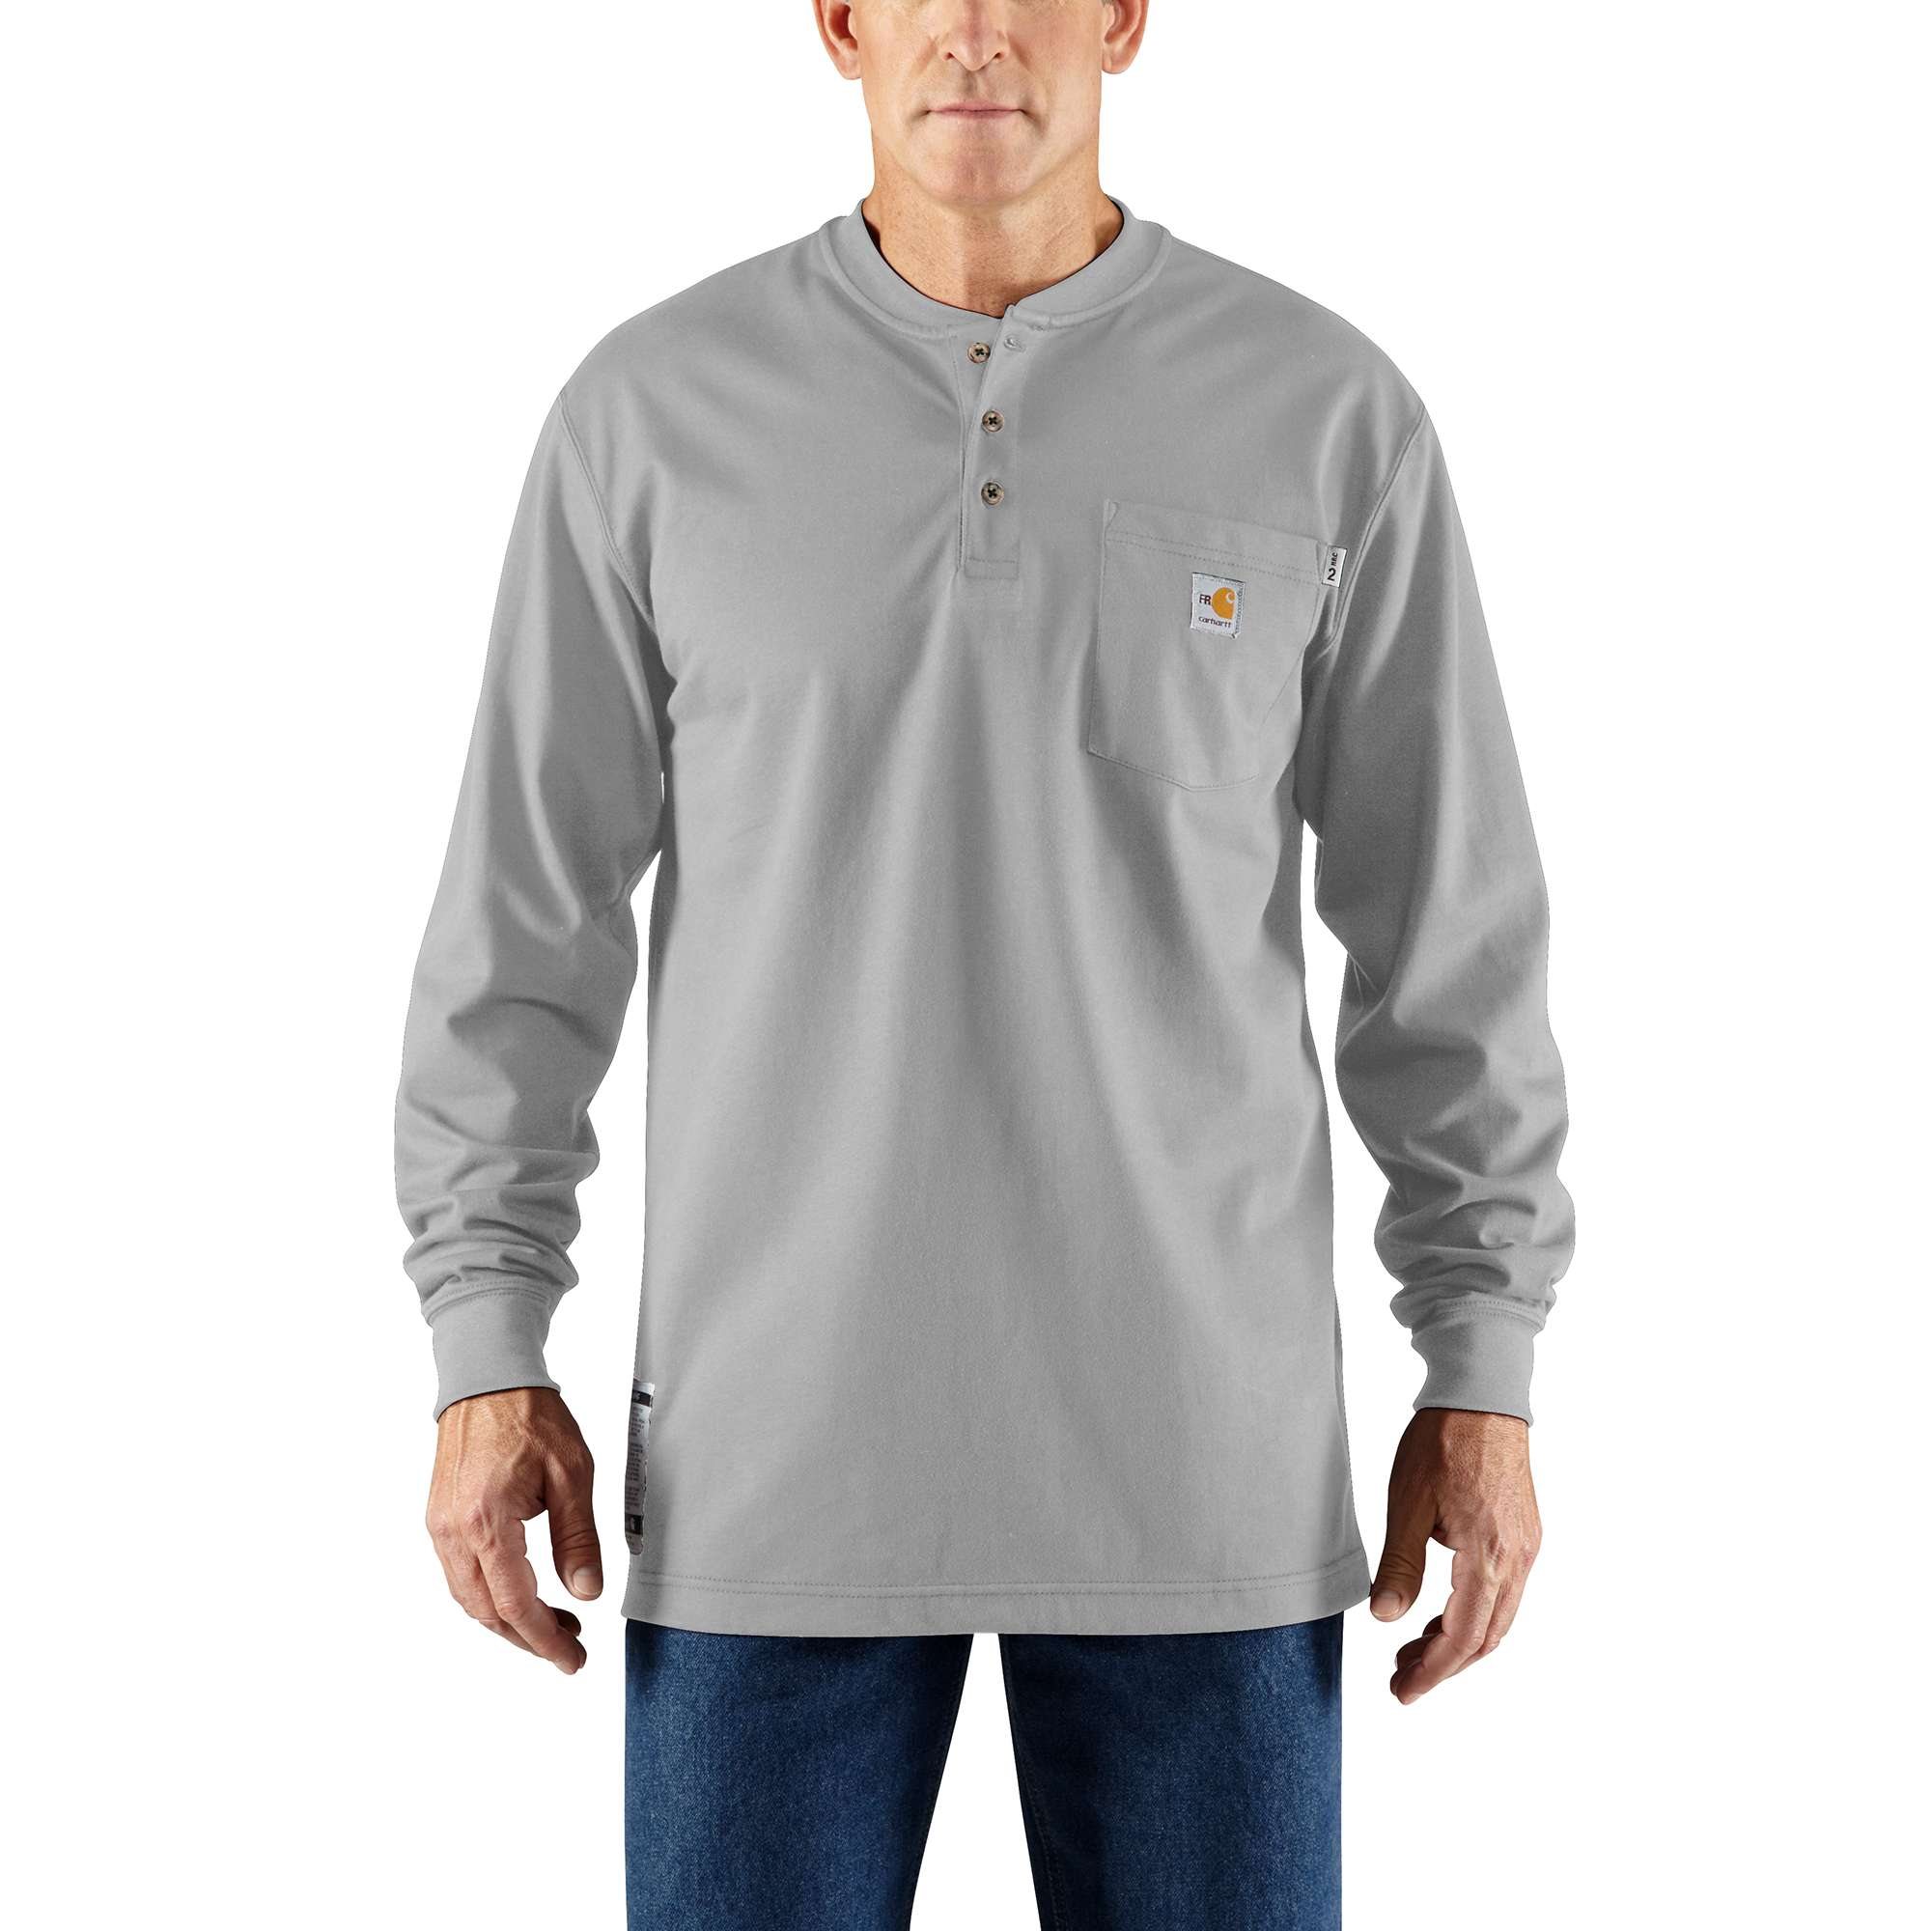 Carhartt - Mens Flame-Resistant Force Cotton Long Sleeve Henley-Carhartt